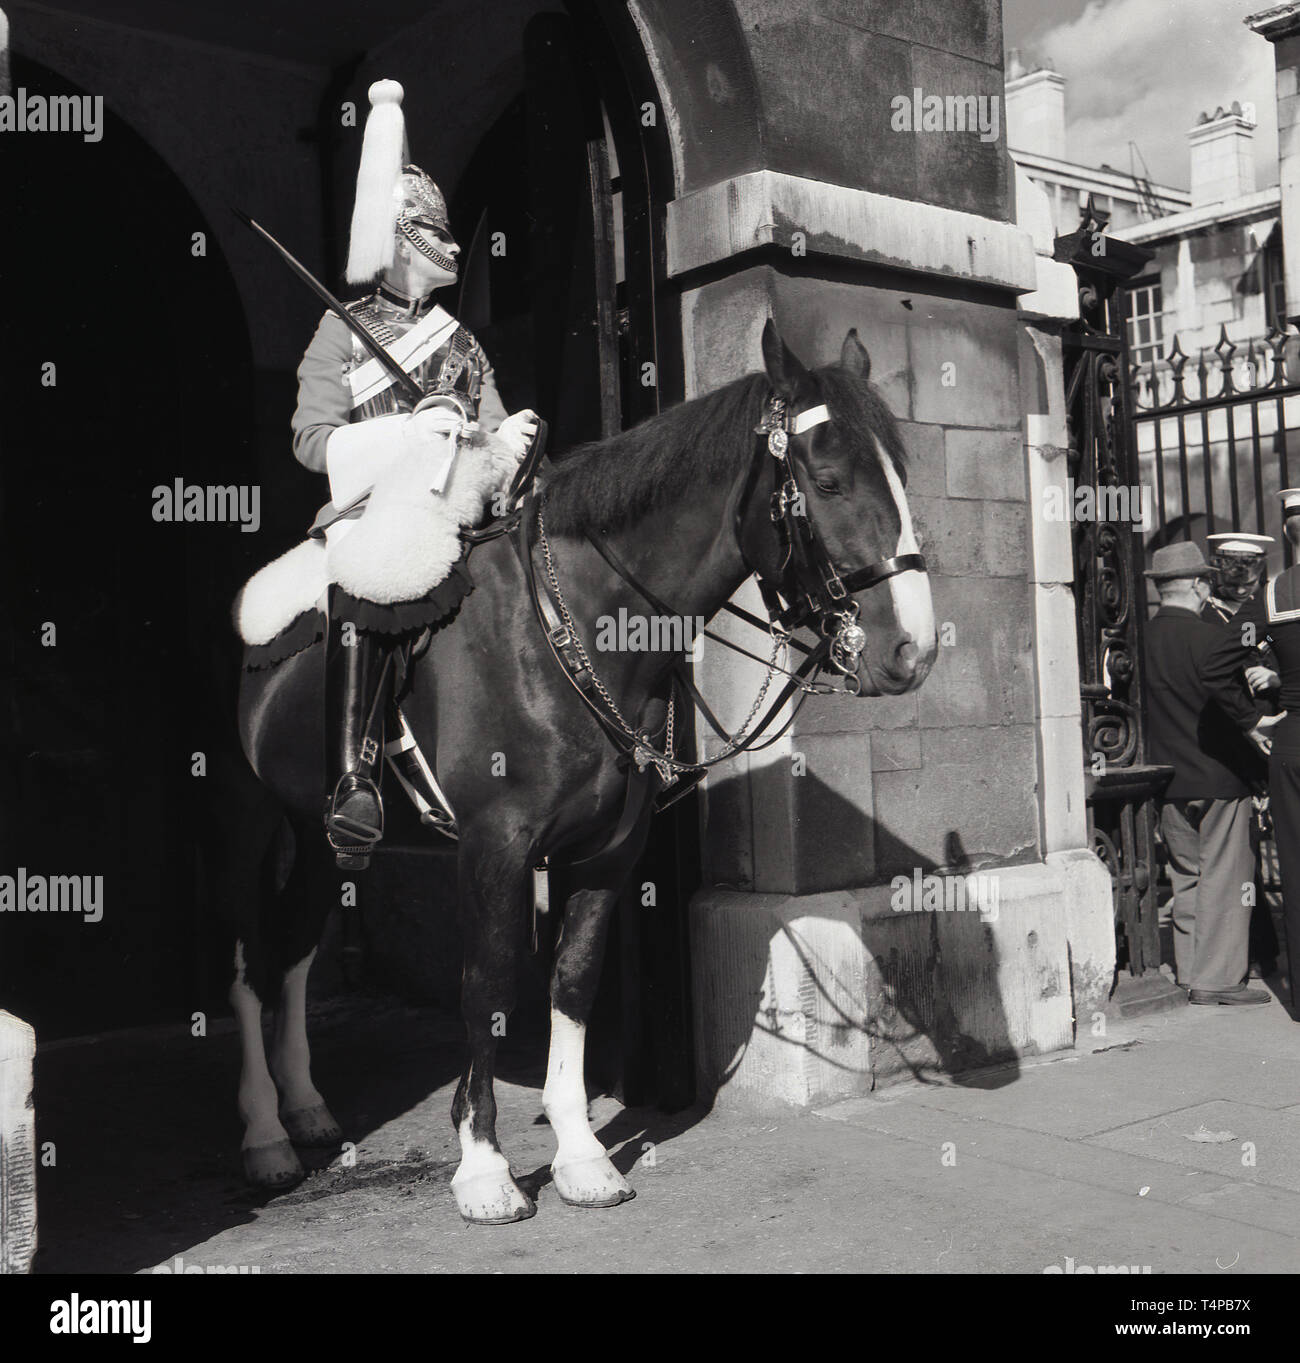 1960s, historical, London, Summer time and a Life Guard of the Household Cavalry mounted reigment in full ceremonial uniform sitting on his horse doing on sentry duty, - Stock Image